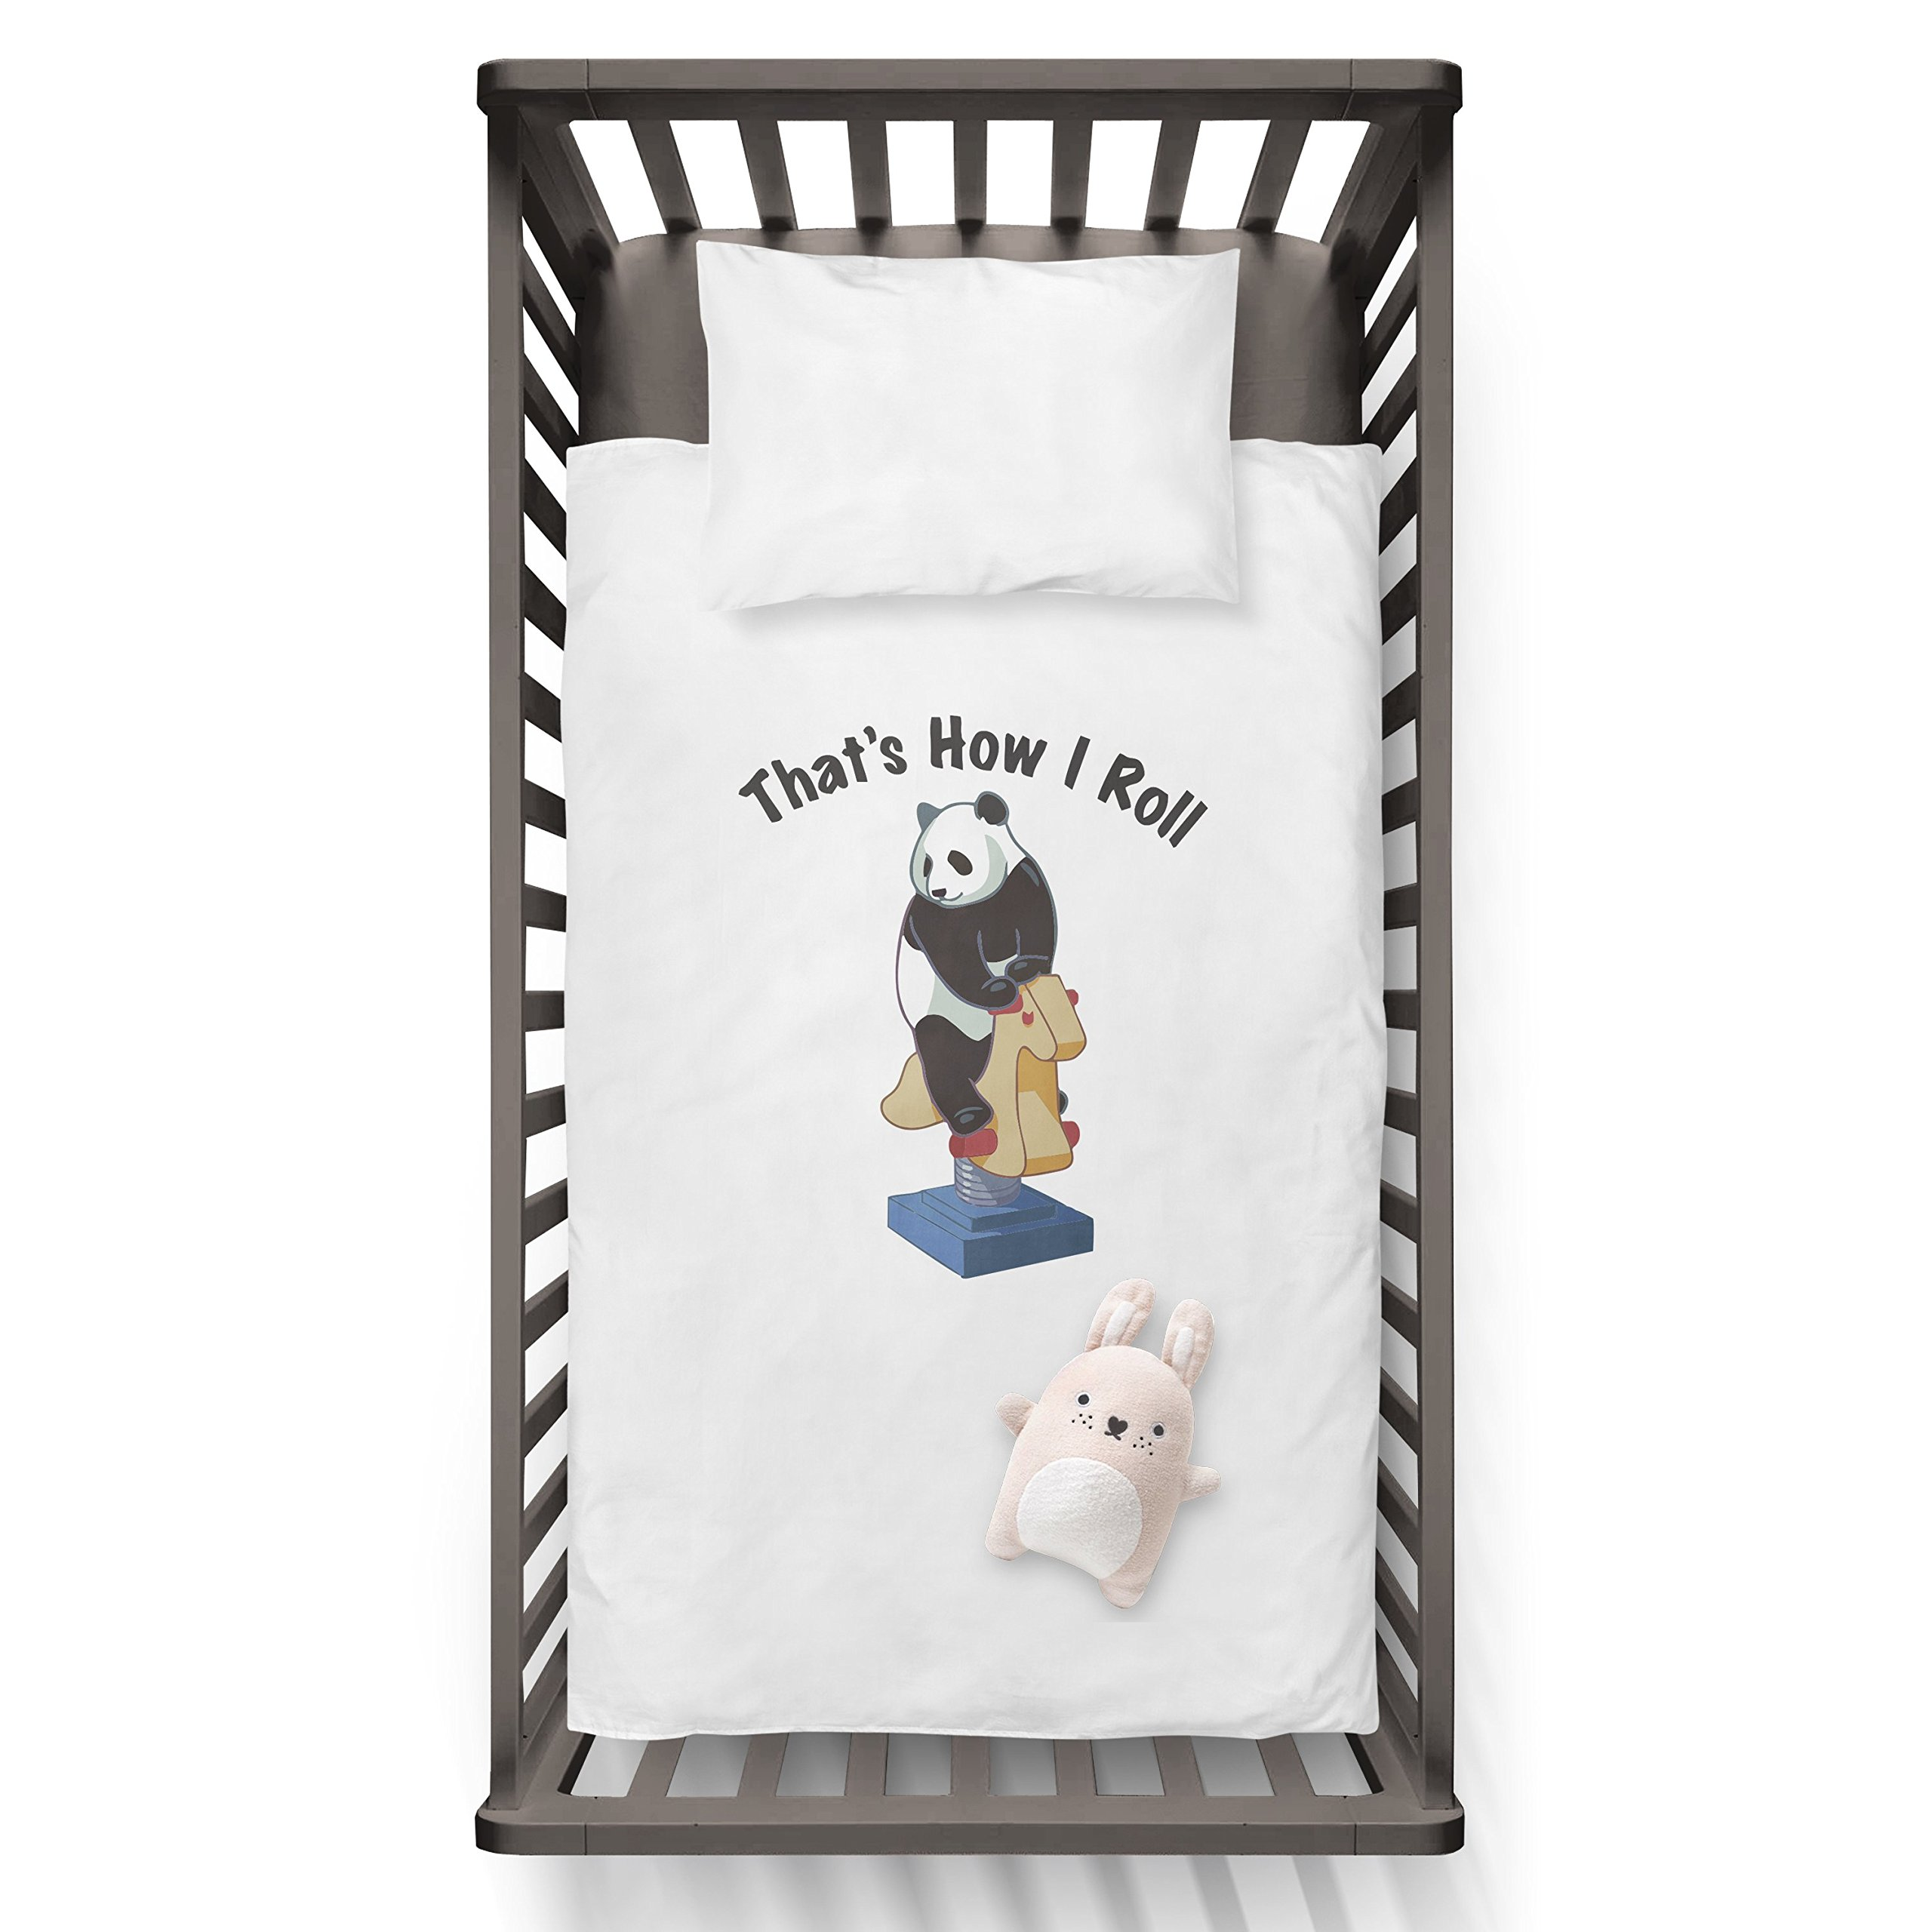 That's how i roll! Funny Humor Hip Baby Duvet /Pillow set,Toddler Duvet,Oeko-Tex,Personalized duvet and pillow,Oraganic,gift